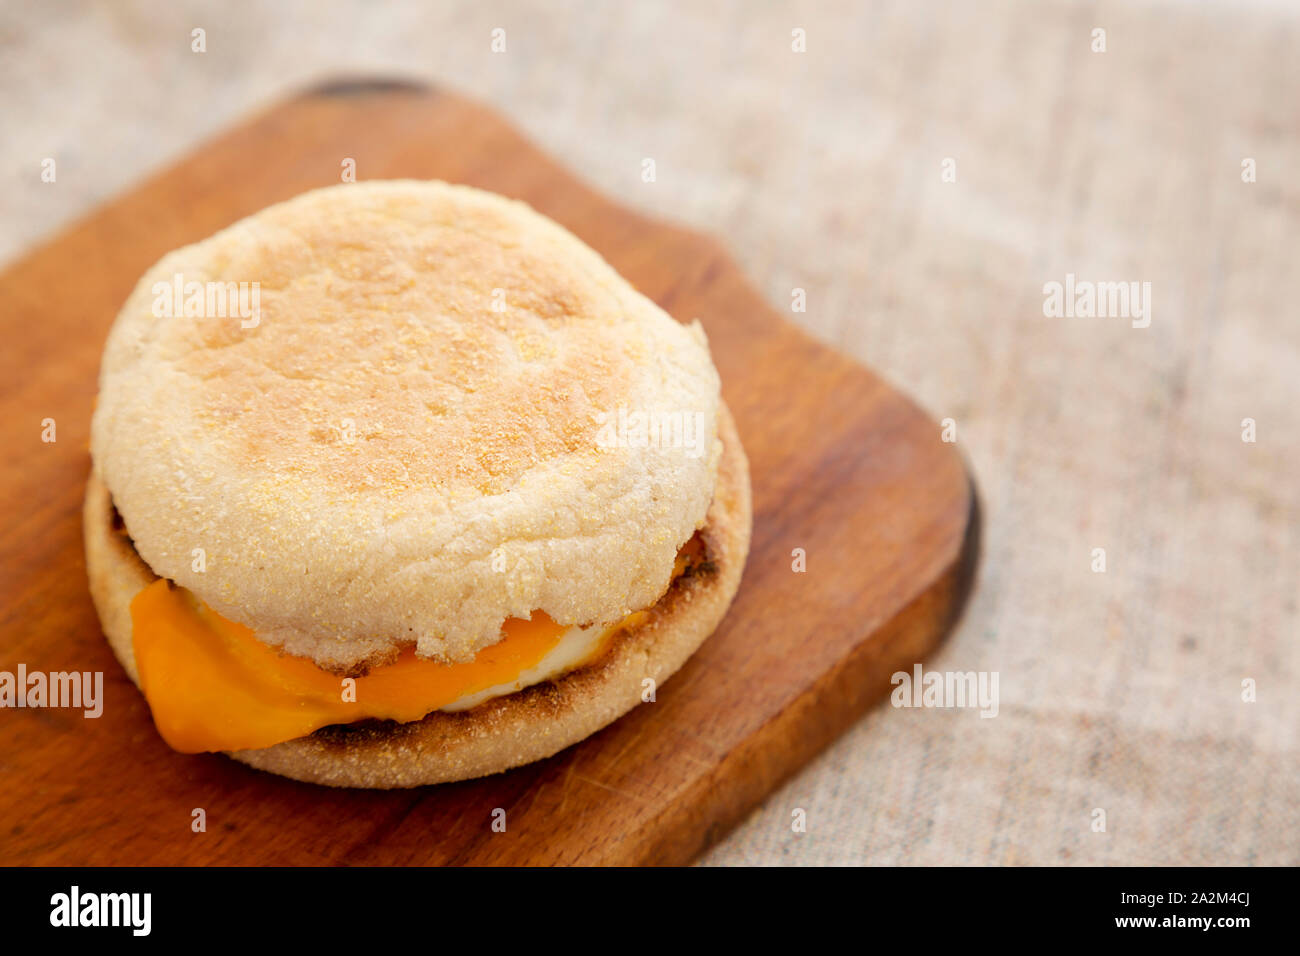 Homemade egg sandwich with cheese on a rustic wooden board, low angle view. Copy space. Stock Photo